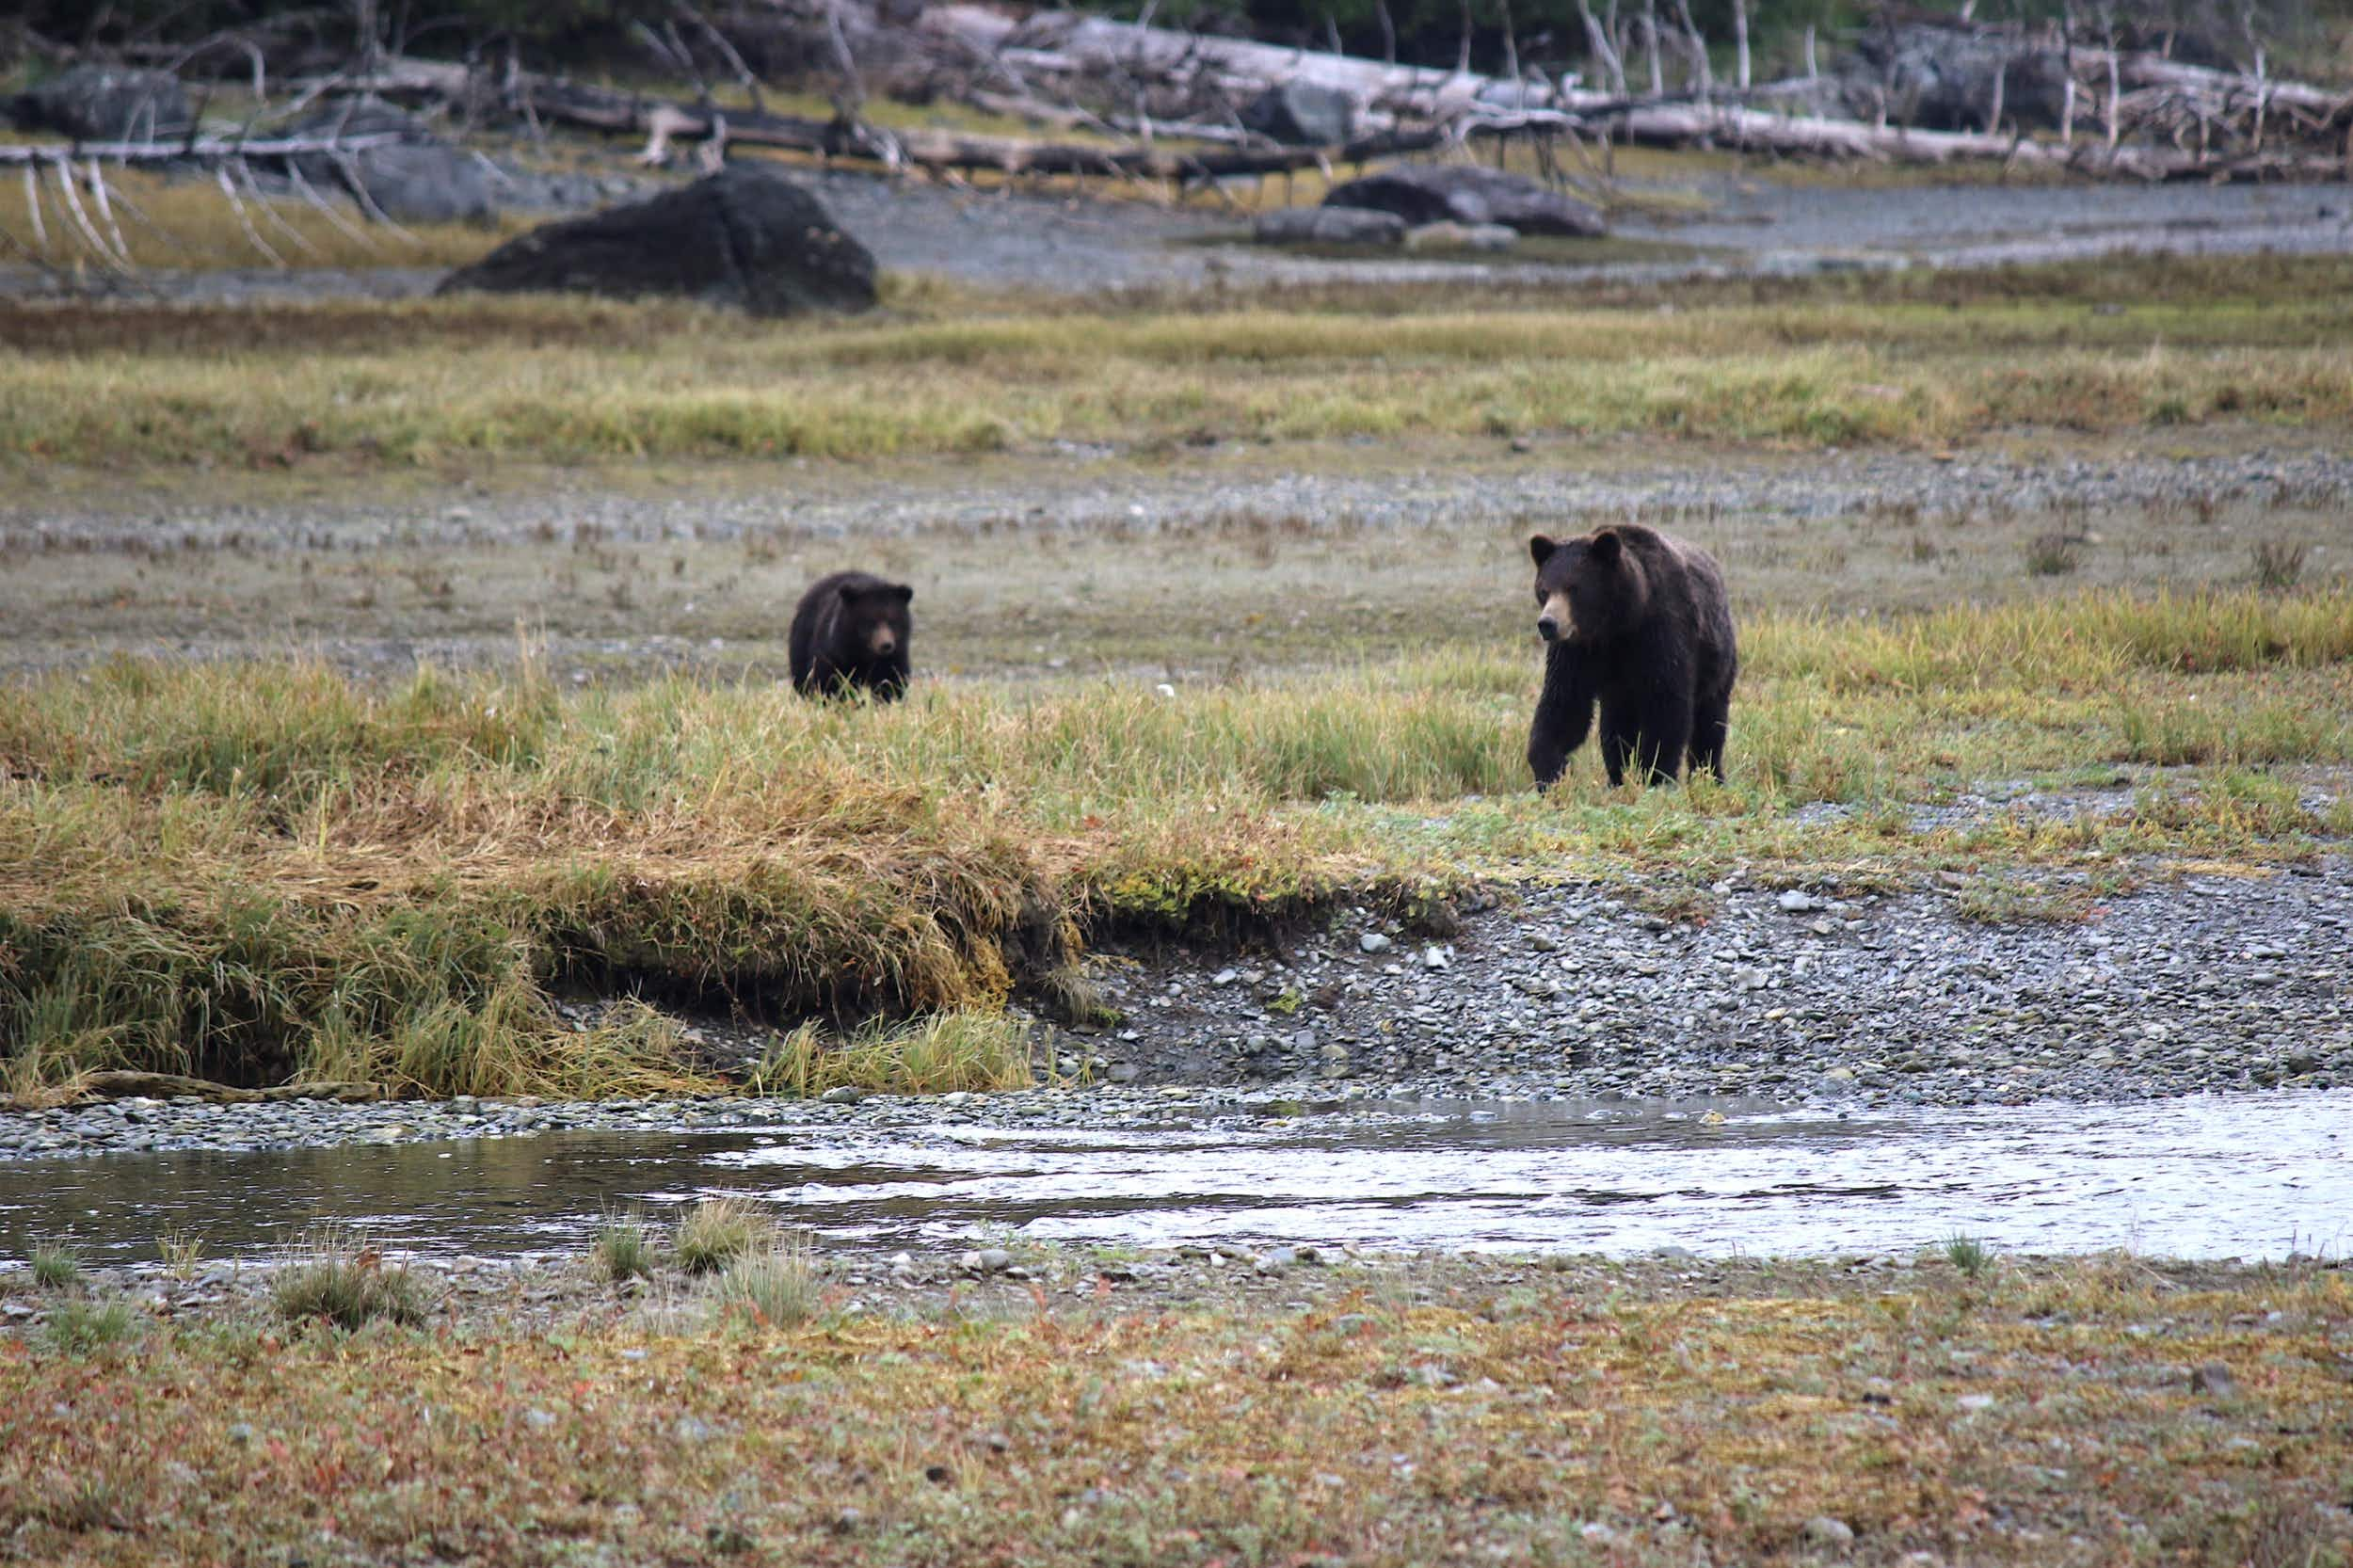 Bear watching at Tongass National Forest is one of the United States' greatest outdoor experiences © Mike MacEacheran / Lonely Planet